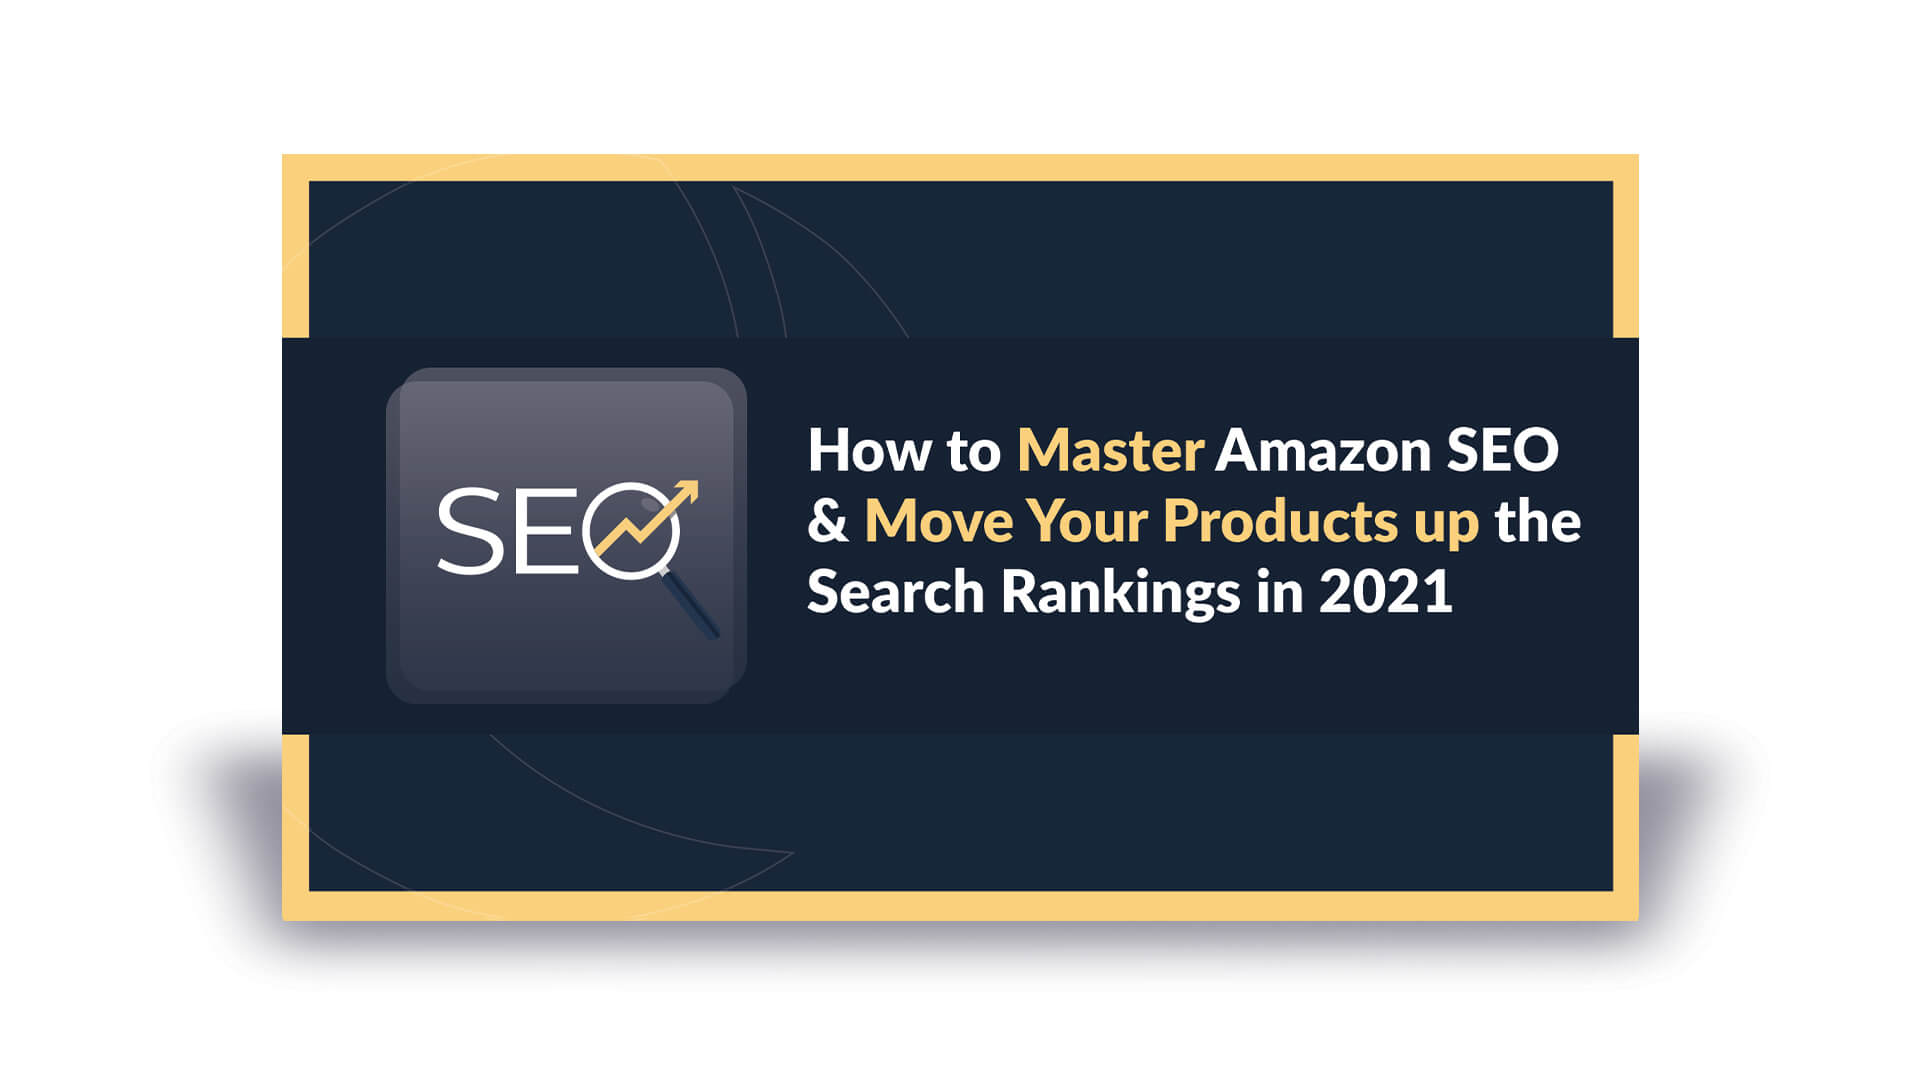 How to Master Amazon SEO and Move Your Products up the Search Rankings in 2021